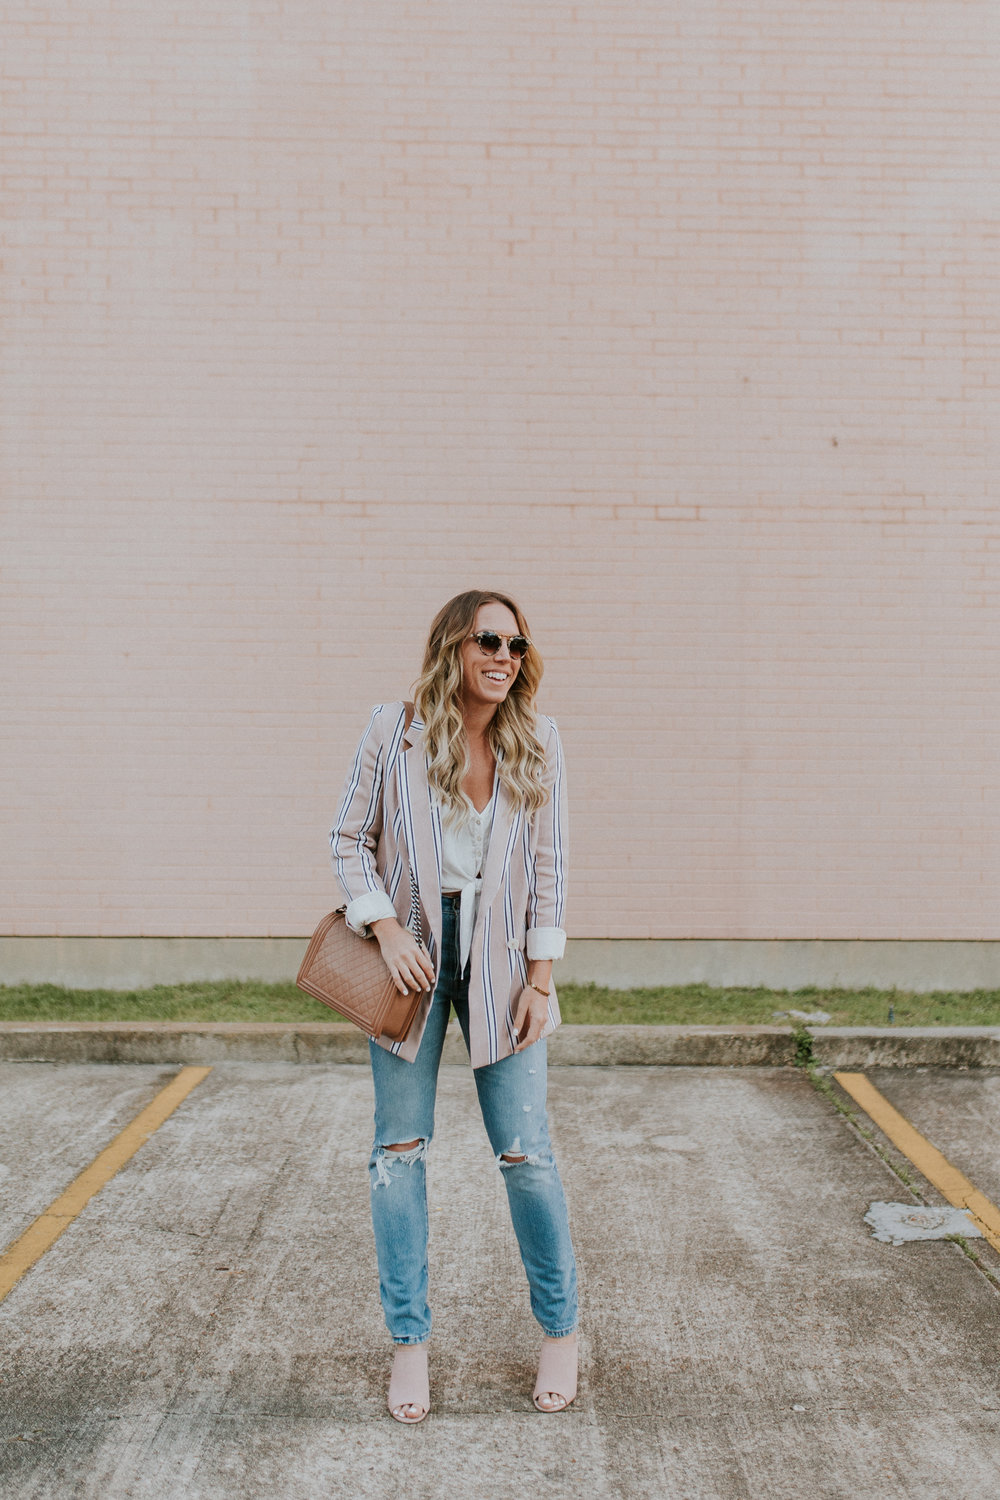 Blogger Gracefully Taylored in Free People Blazer & Levis.jpg